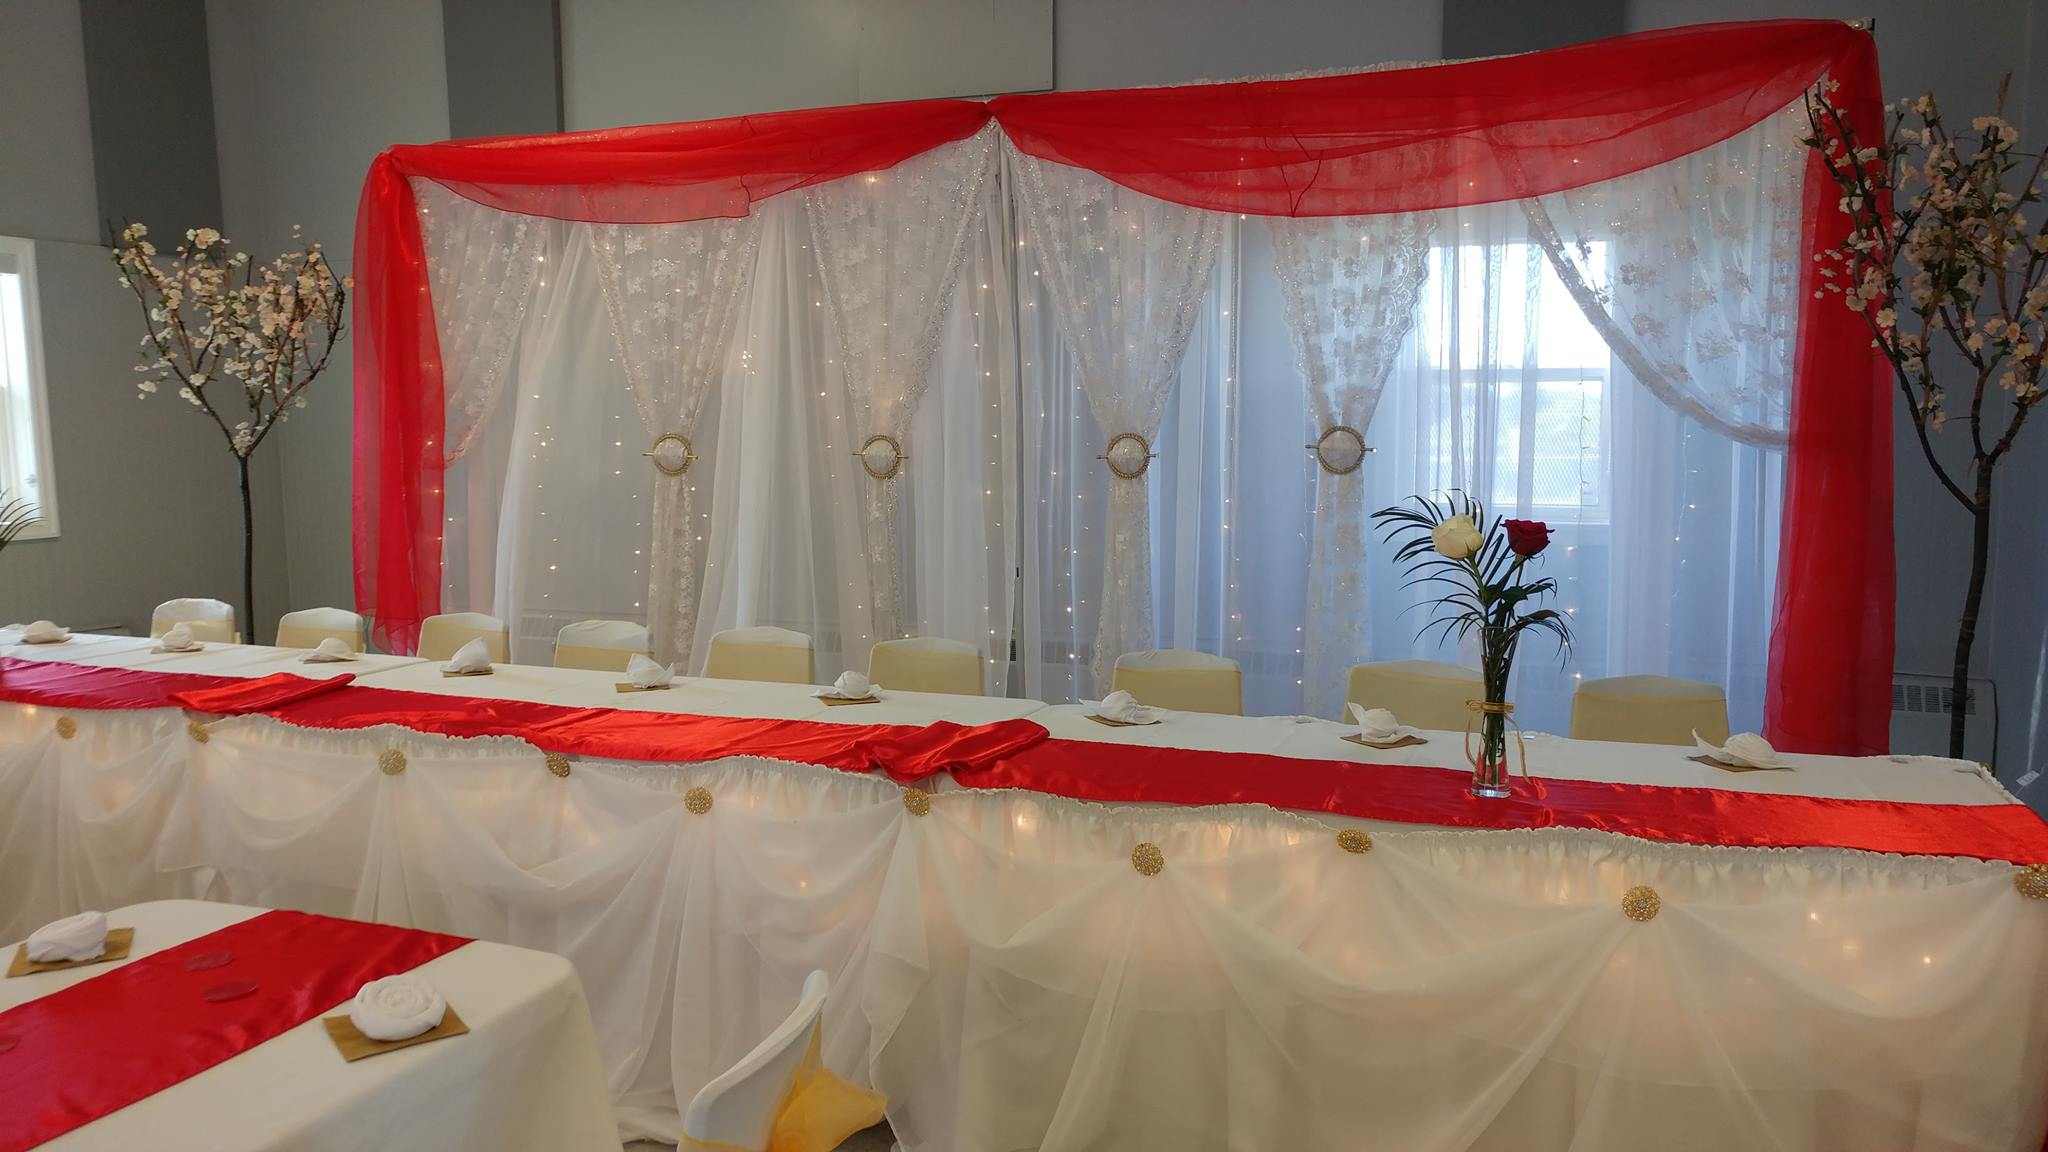 20ft Double Tier (White & White Lace) & Red Swag Backdrop - North End Rec